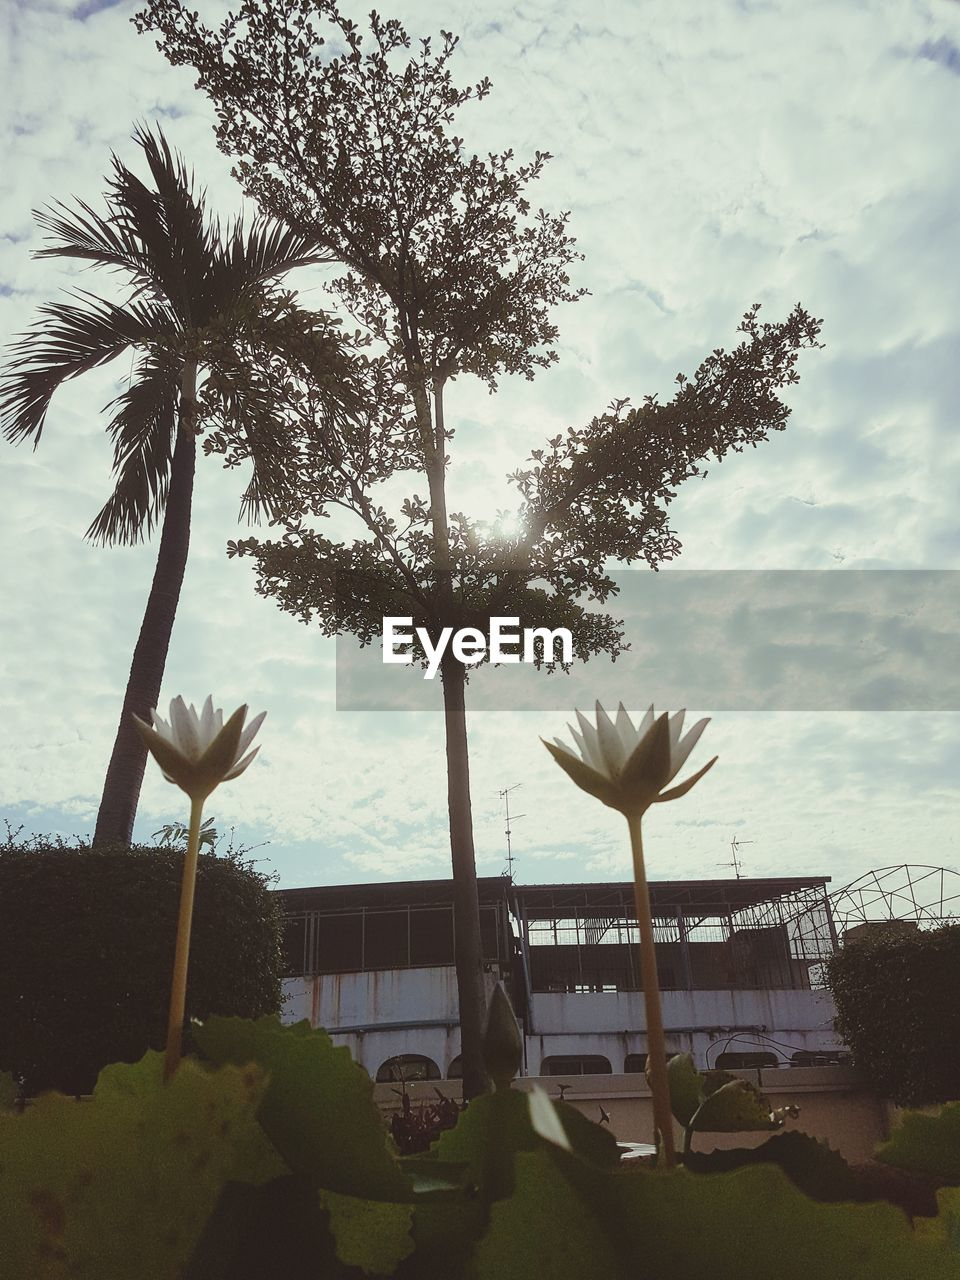 plant, tree, sky, nature, cloud - sky, growth, tropical climate, water, beauty in nature, palm tree, no people, day, architecture, built structure, outdoors, tranquility, land, building exterior, sea